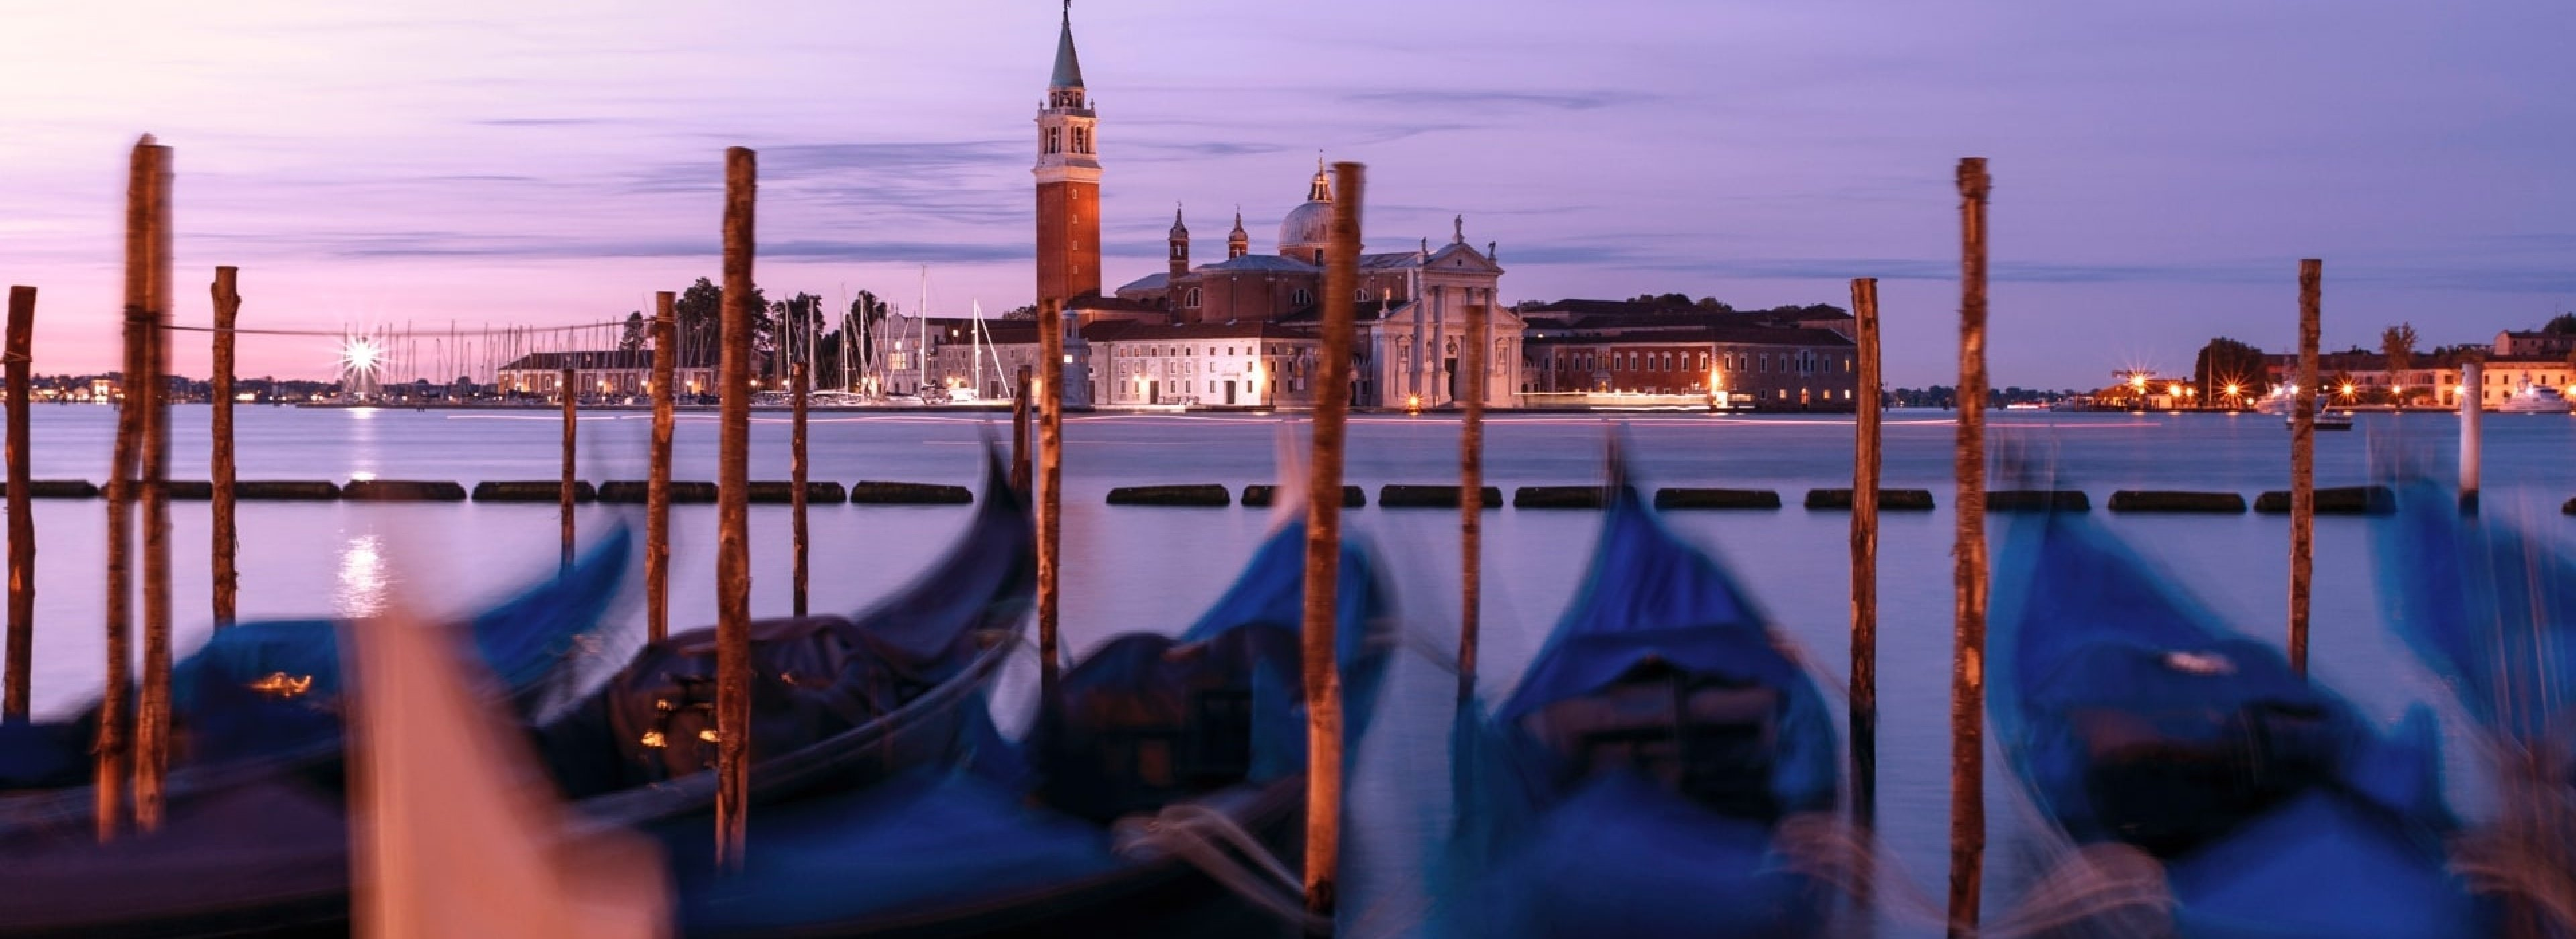 Explore Venice on your tour to Italy with Firebird Tours